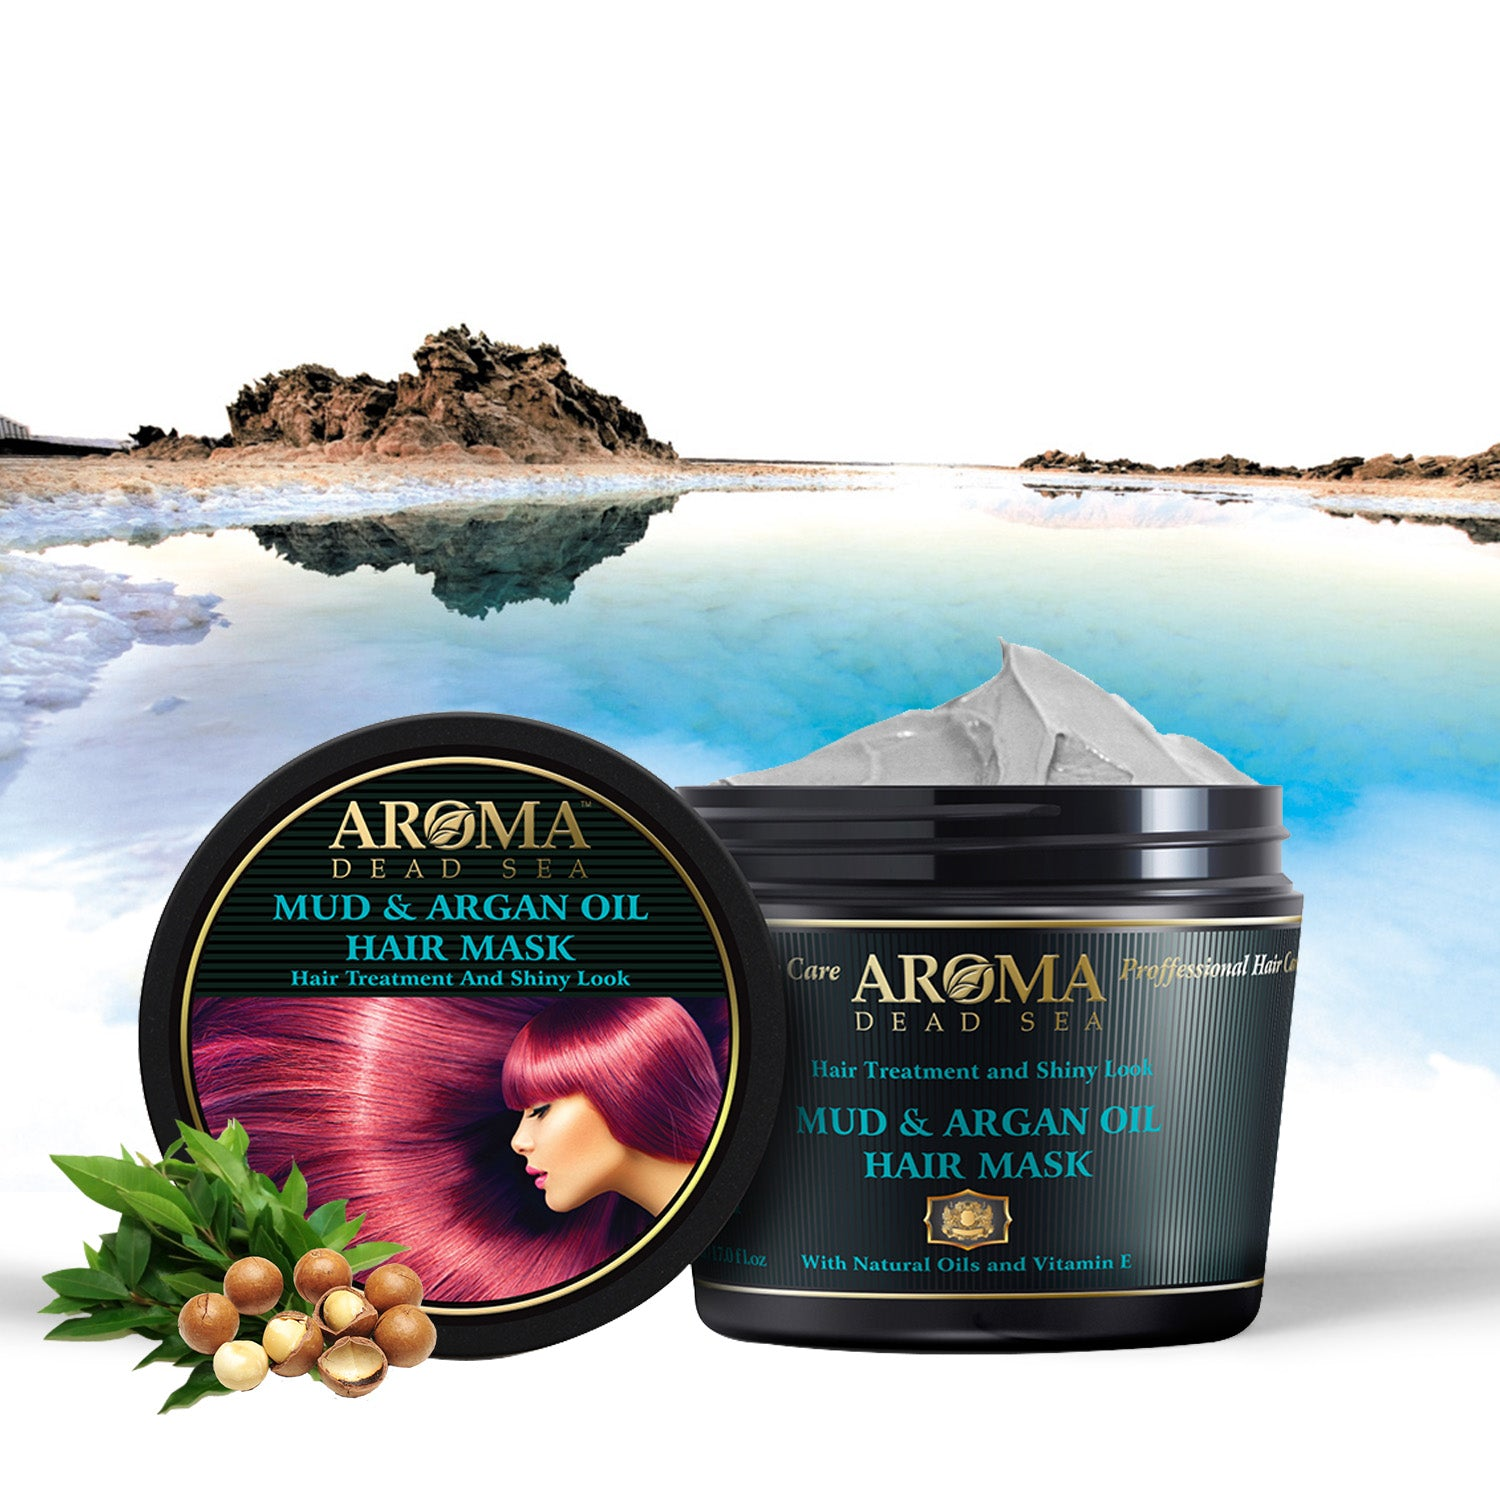 Black Mud & Argan Oil Hair Mask 500 ml - Aroma Dead Sea